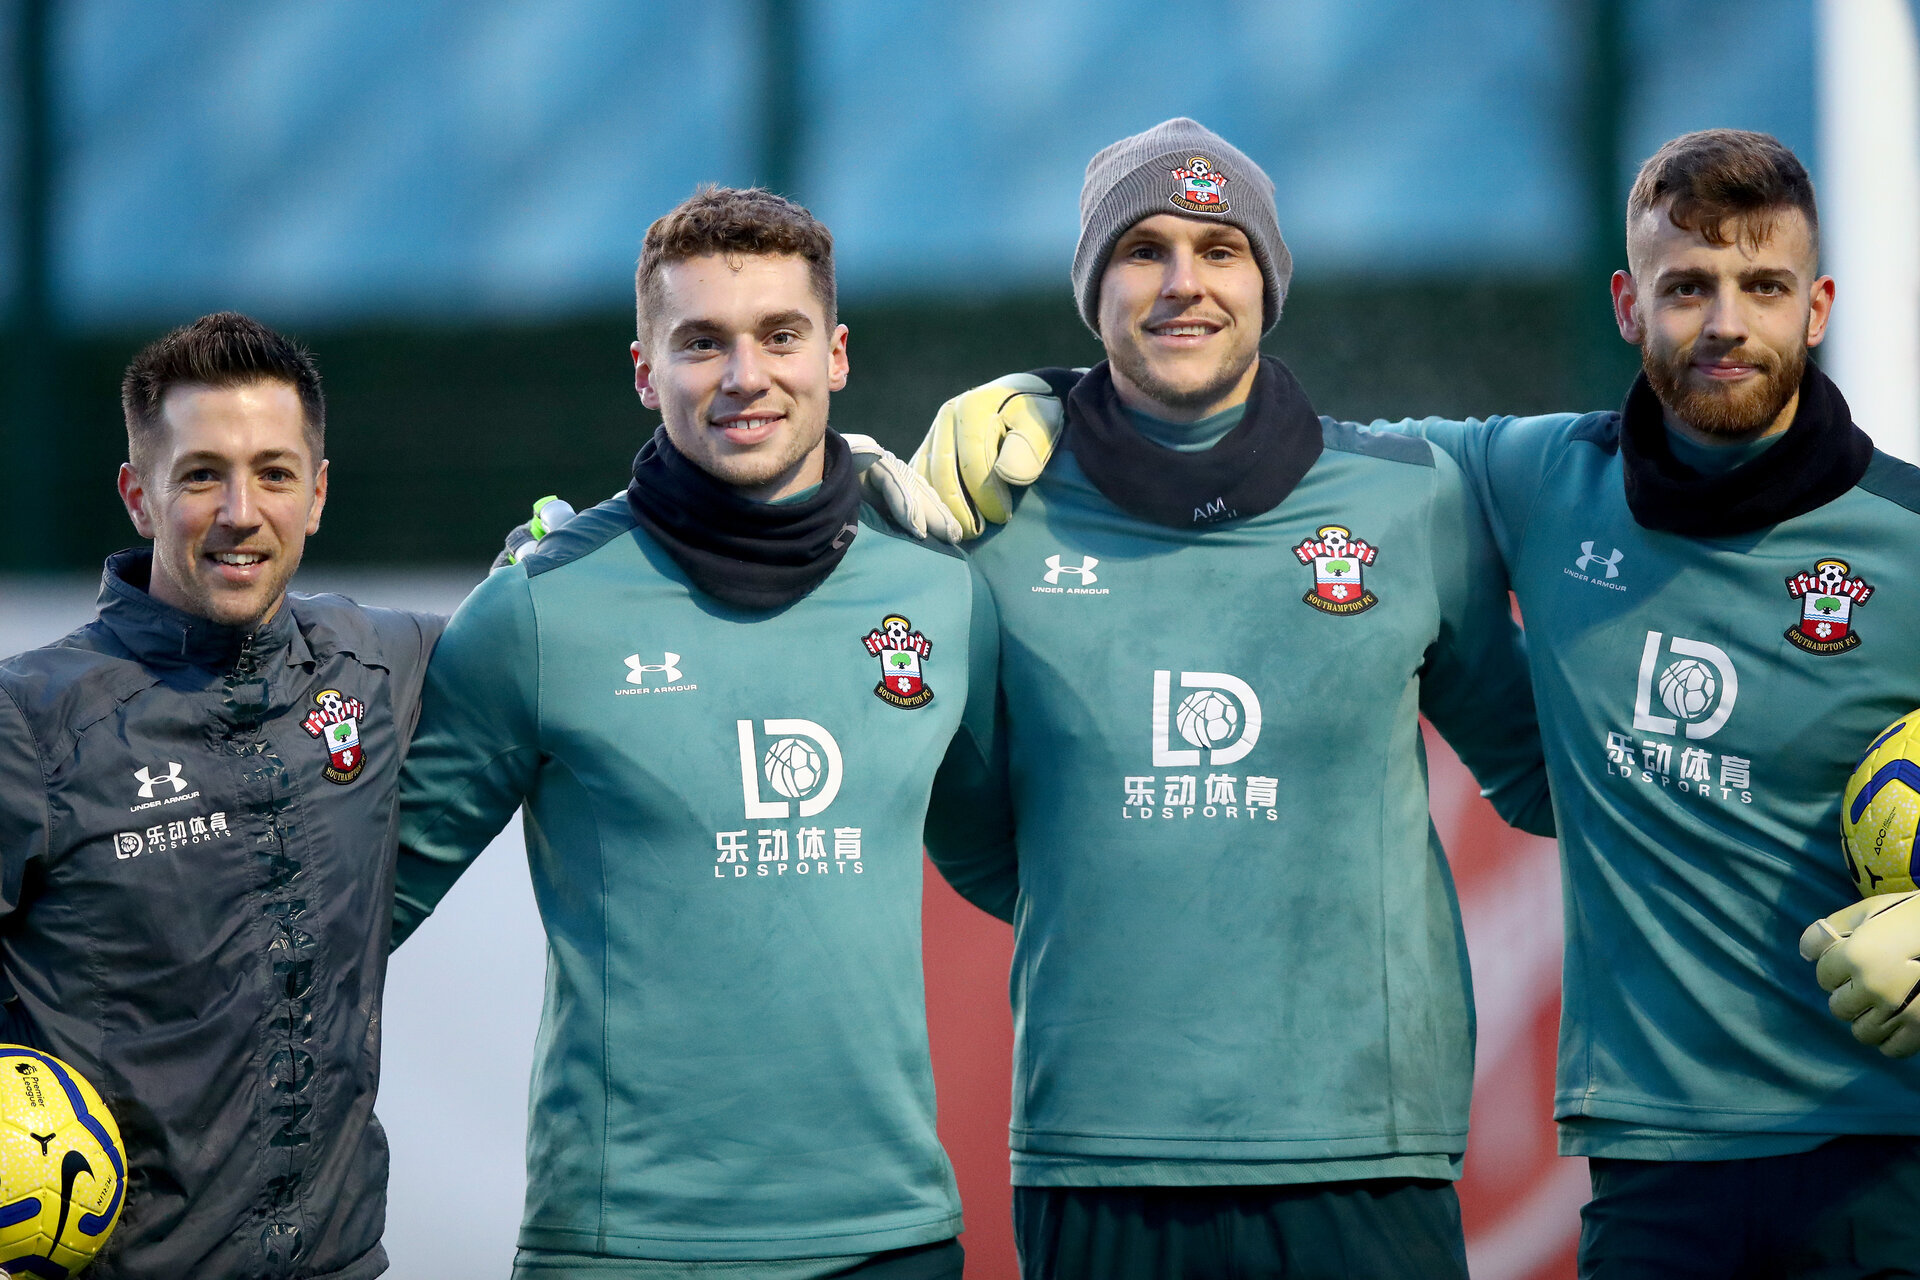 SOUTHAMPTON, ENGLAND - DECEMBER 25: L to R Andrew Sparkes, Harry Lewis, Alex McCarthy and Angus Gunn during a Christmas day training session at the Staplewood Campus on December 25, 2019 in Southampton, England. (Photo by Matt Watson/Southampton FC via Getty Images)